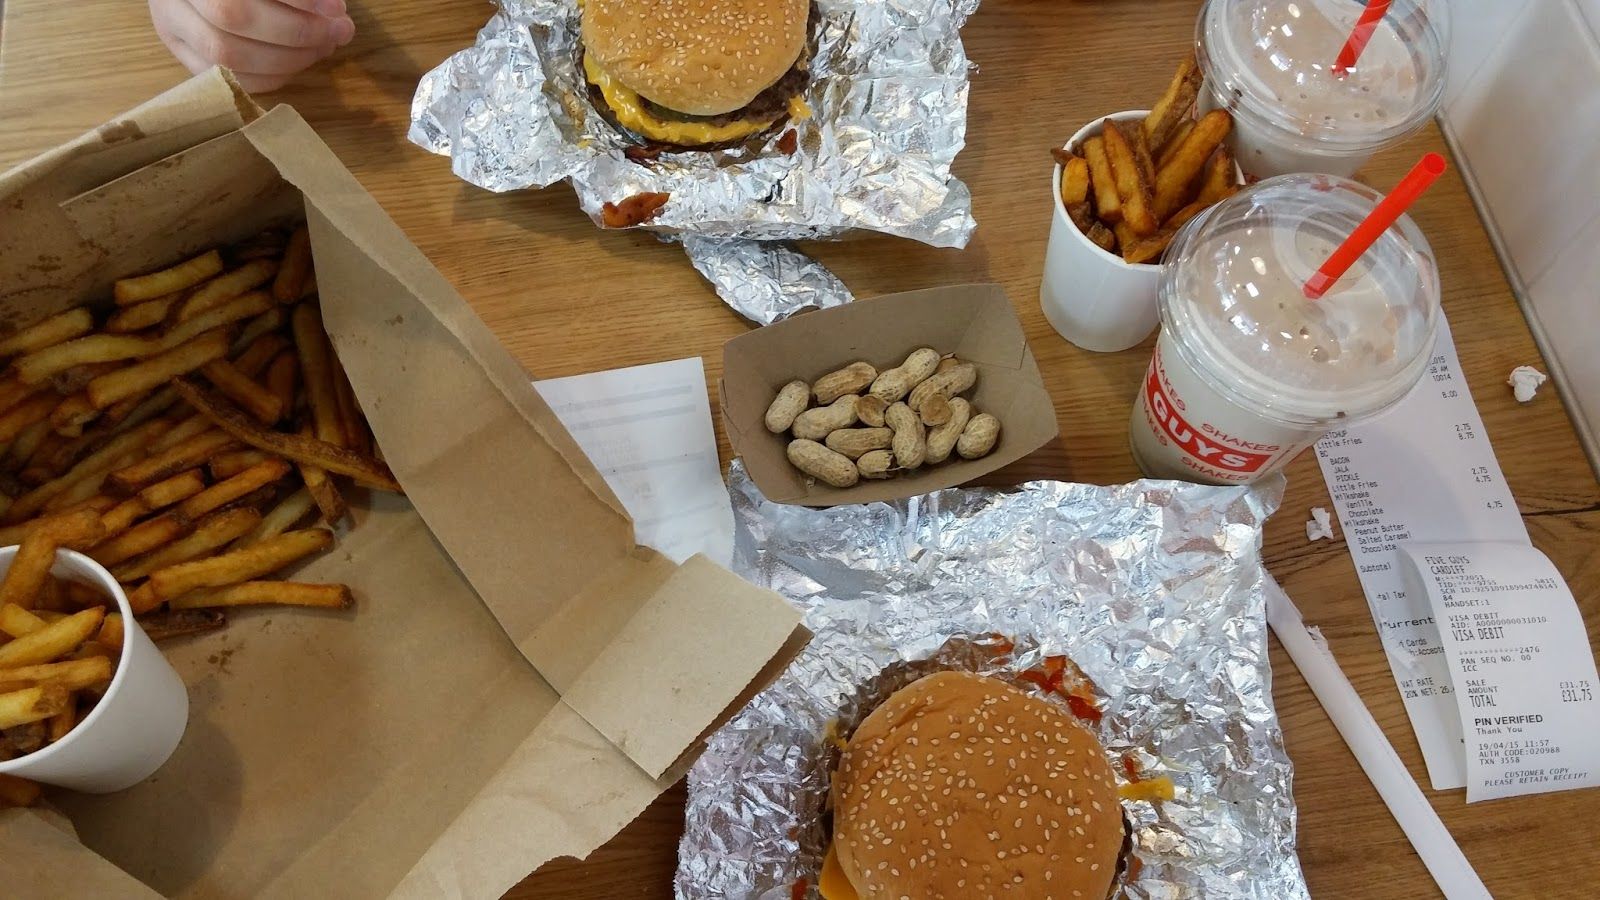 Five Guys Cardiff chips burgers and milkshakes